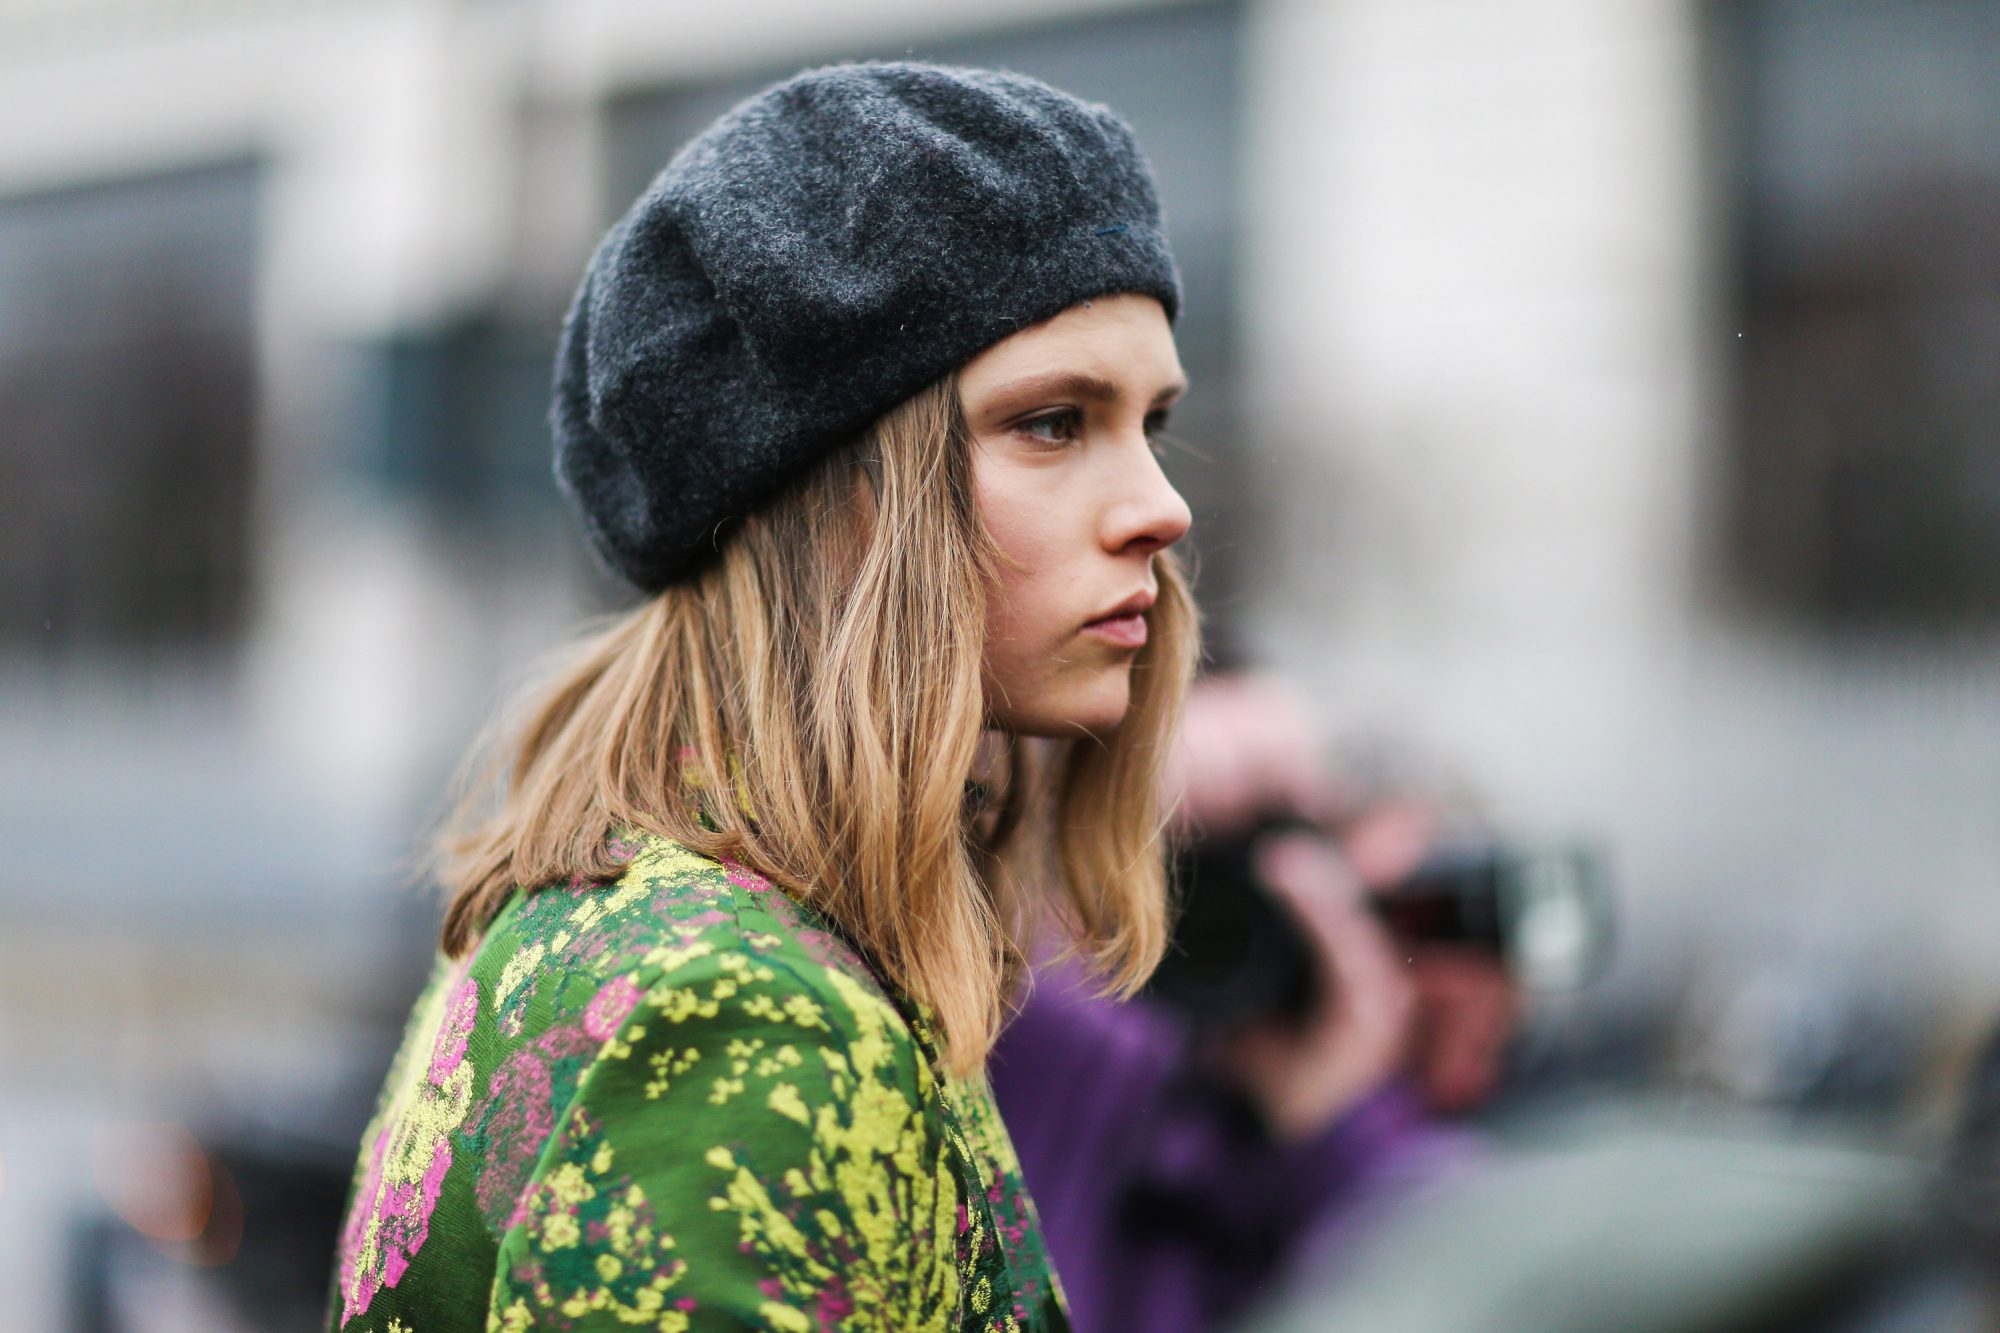 COLORFUL COAT AND BERET